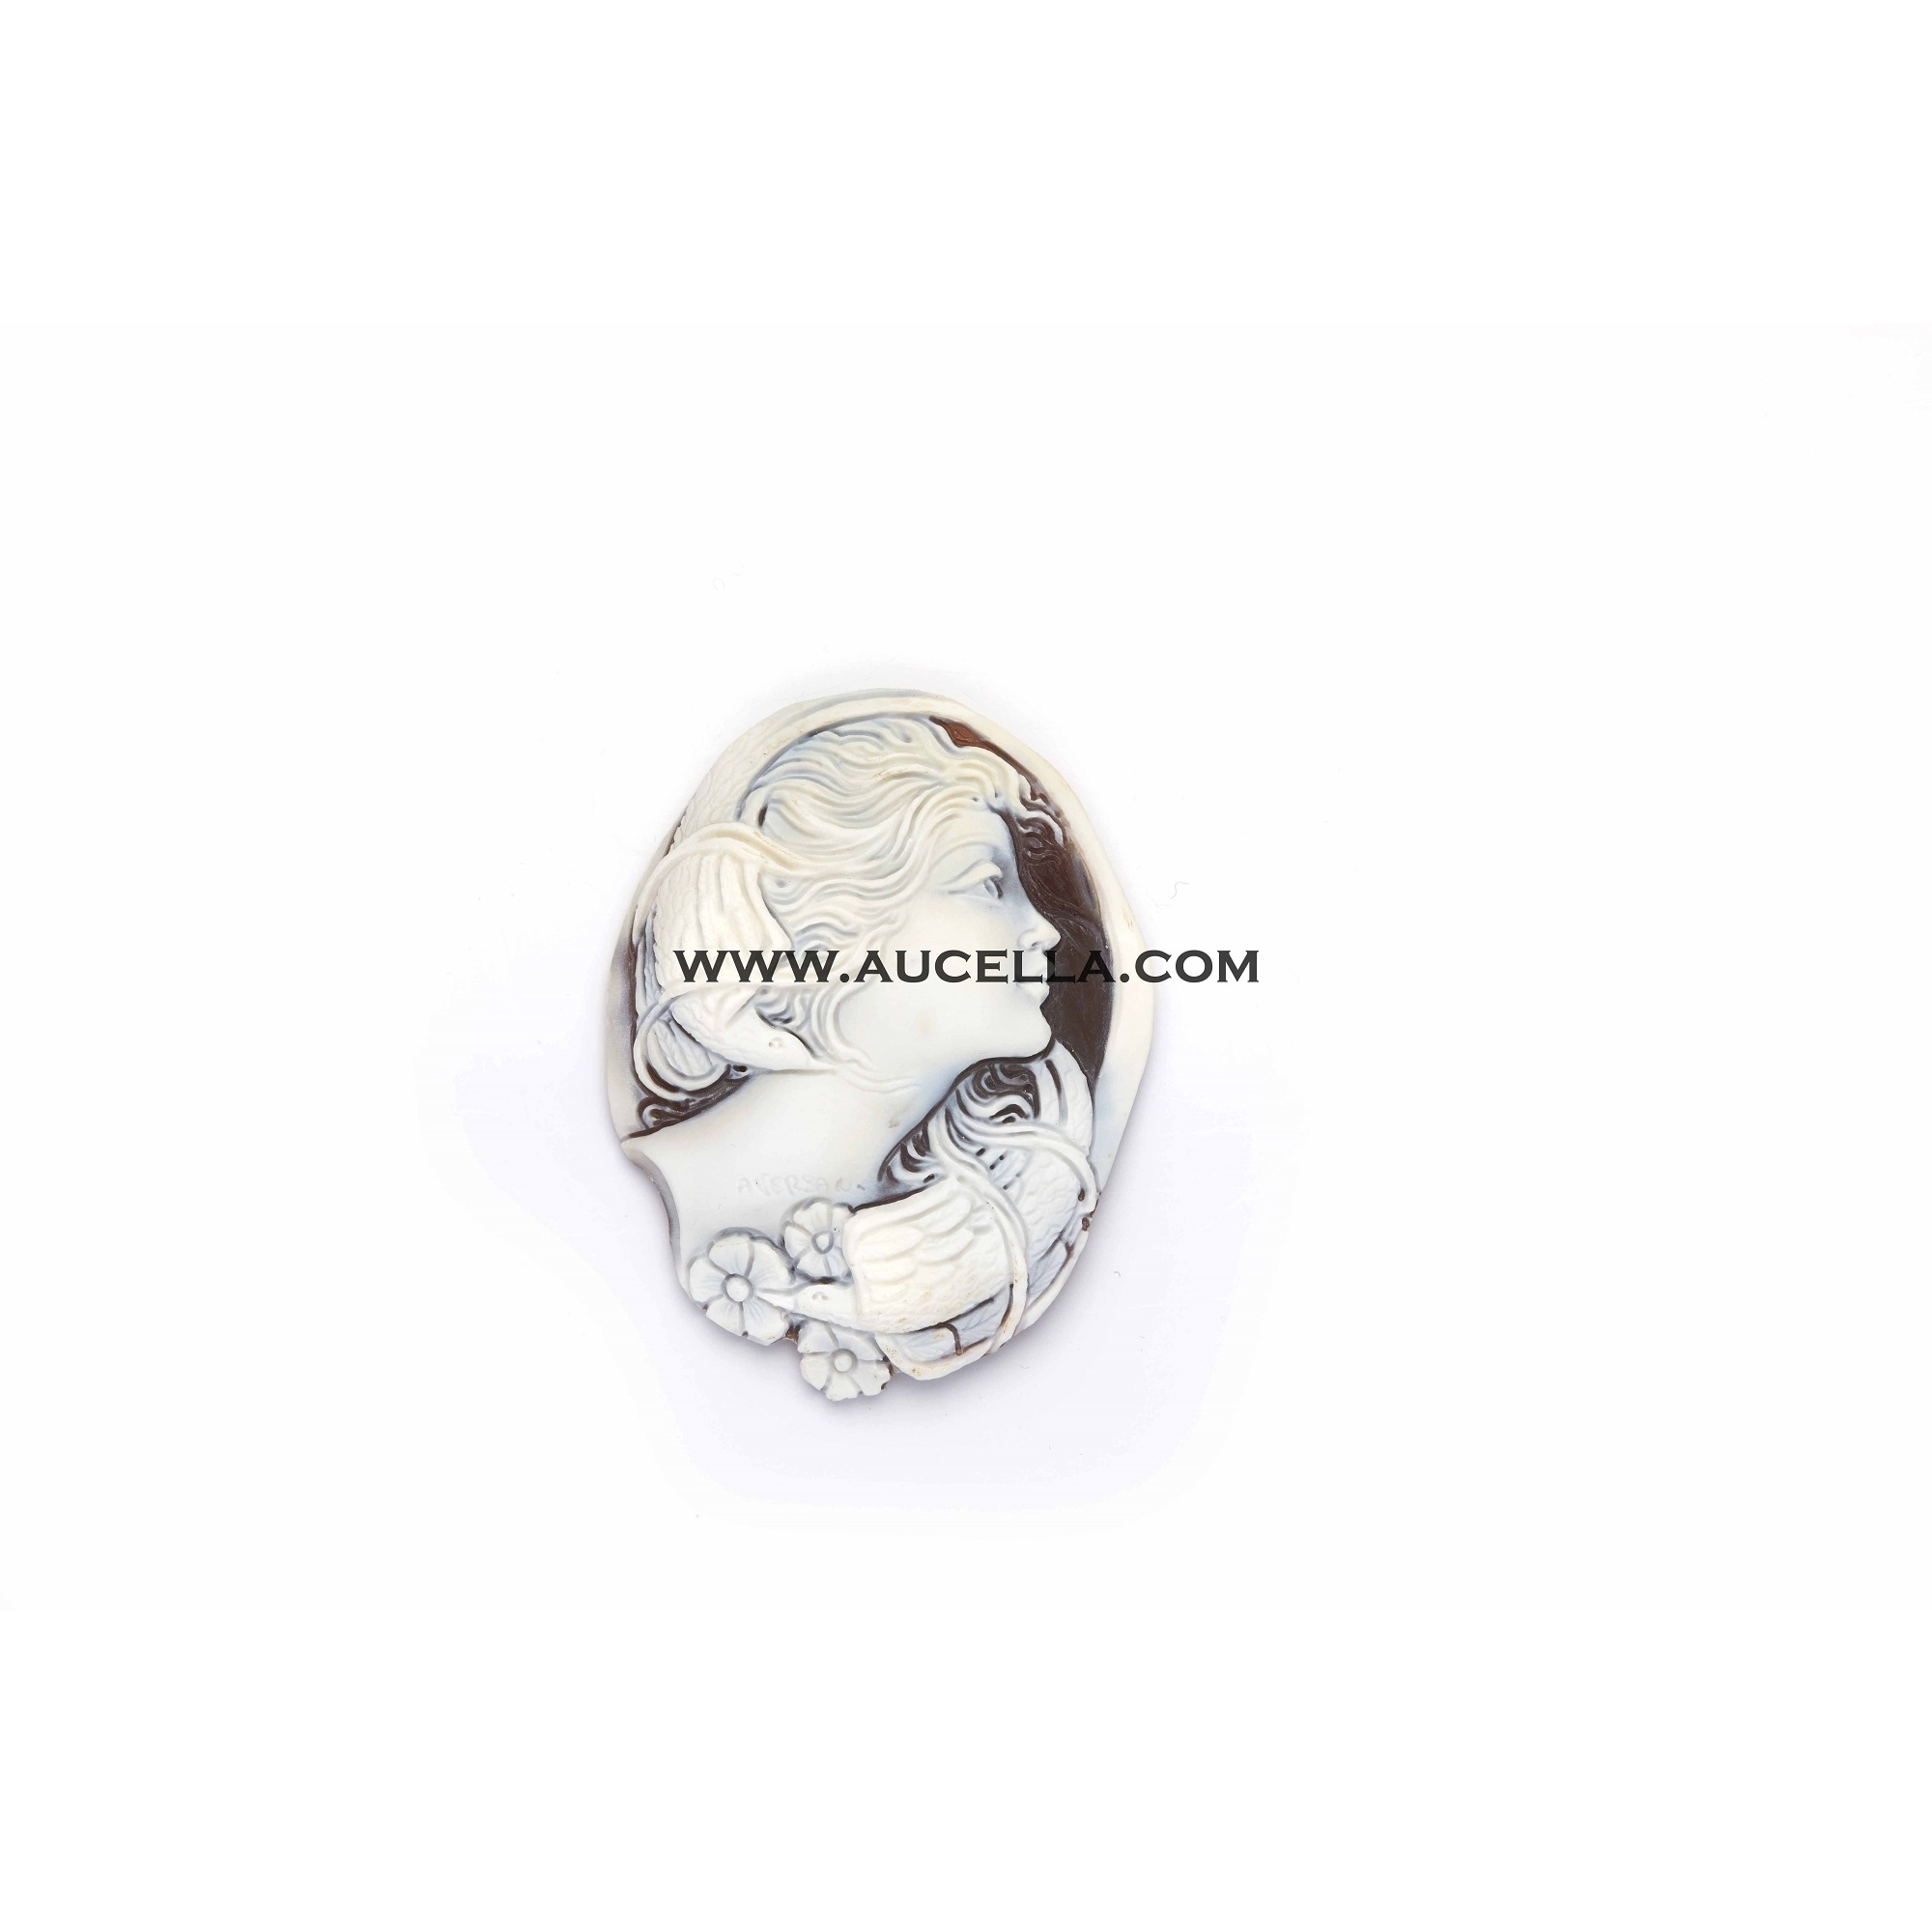 Aversano Shell cameo